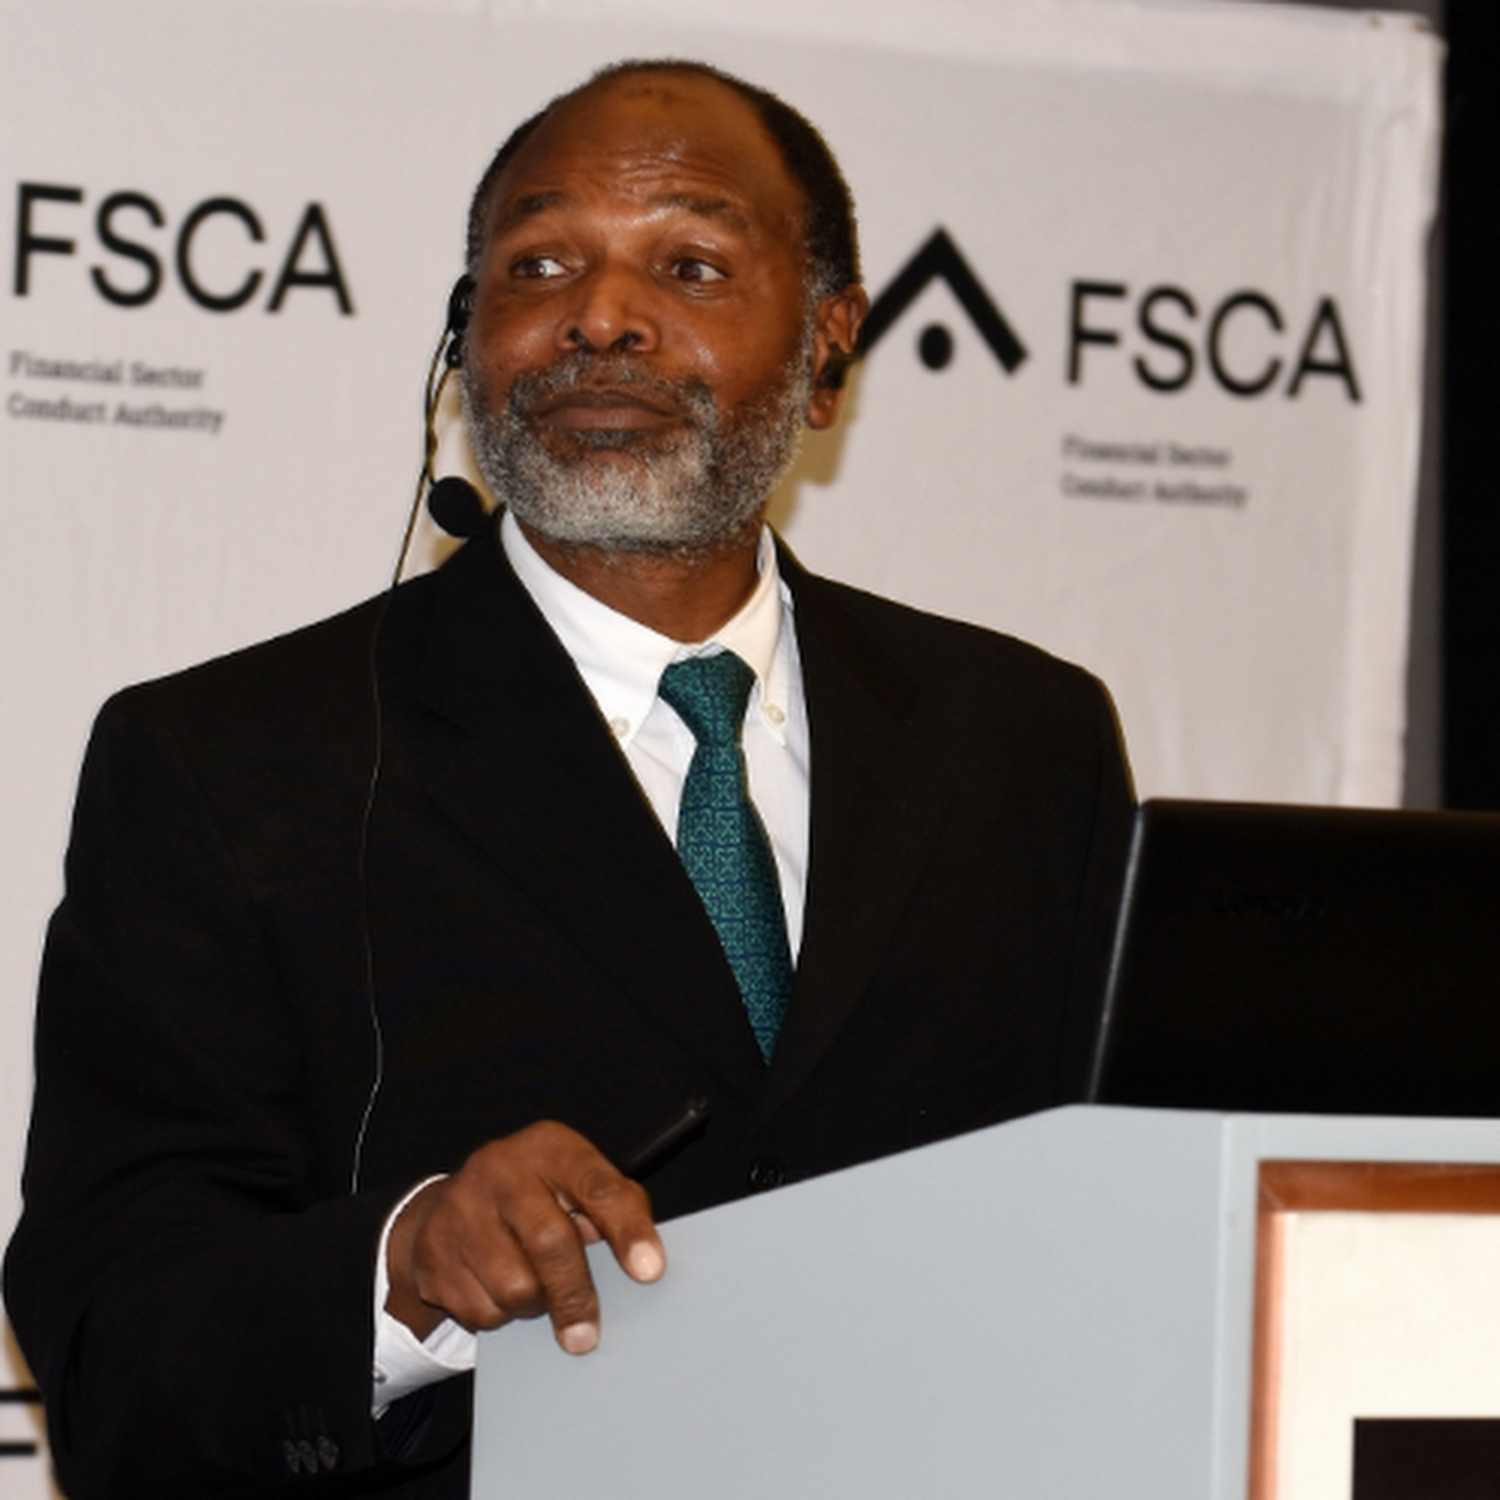 ALLAN GREENBLO: There's an opportunity to overhaul the FSCA